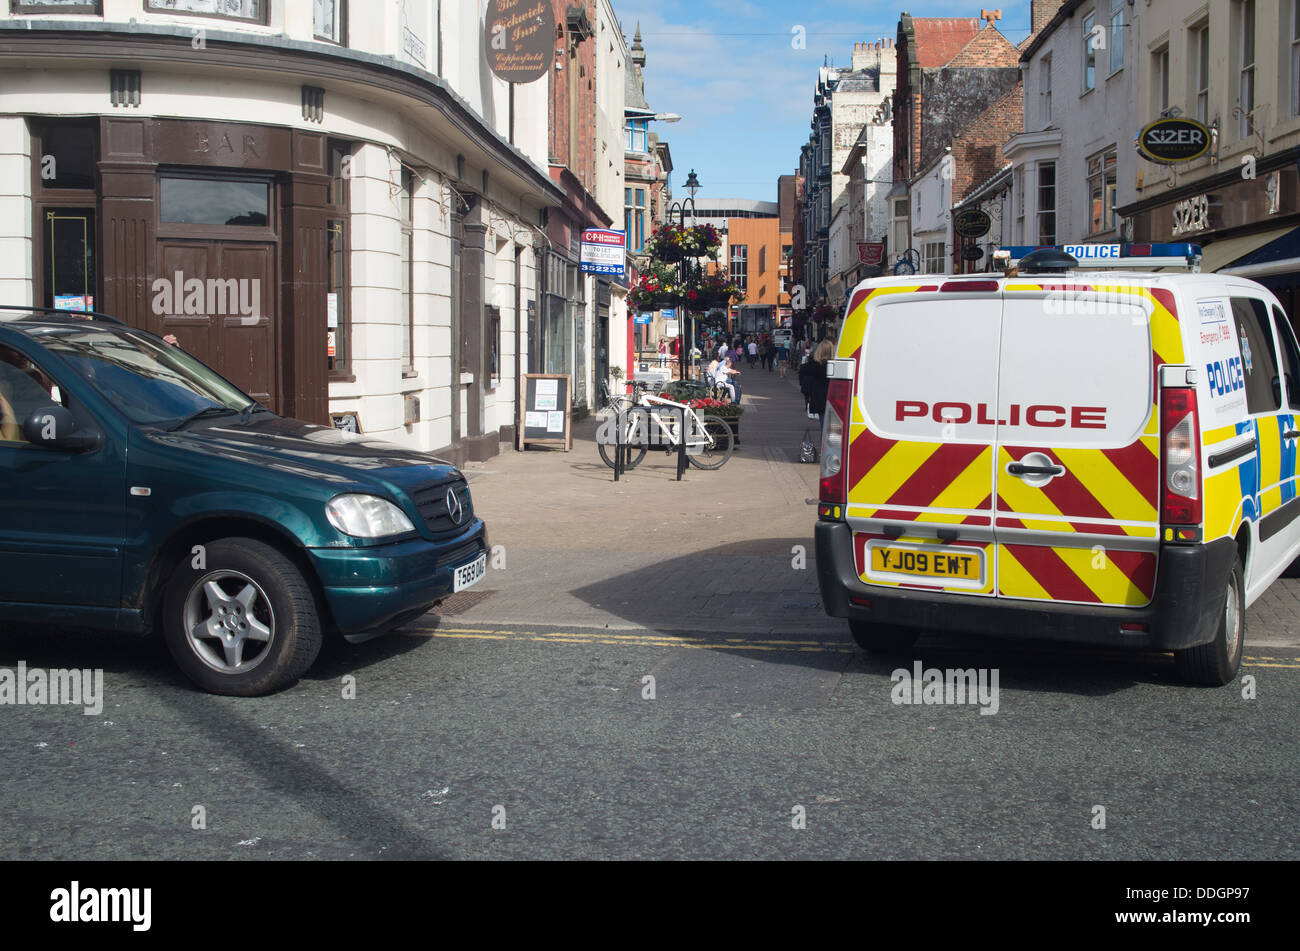 Police car drives past illegally parked 4X4 - Stock Image